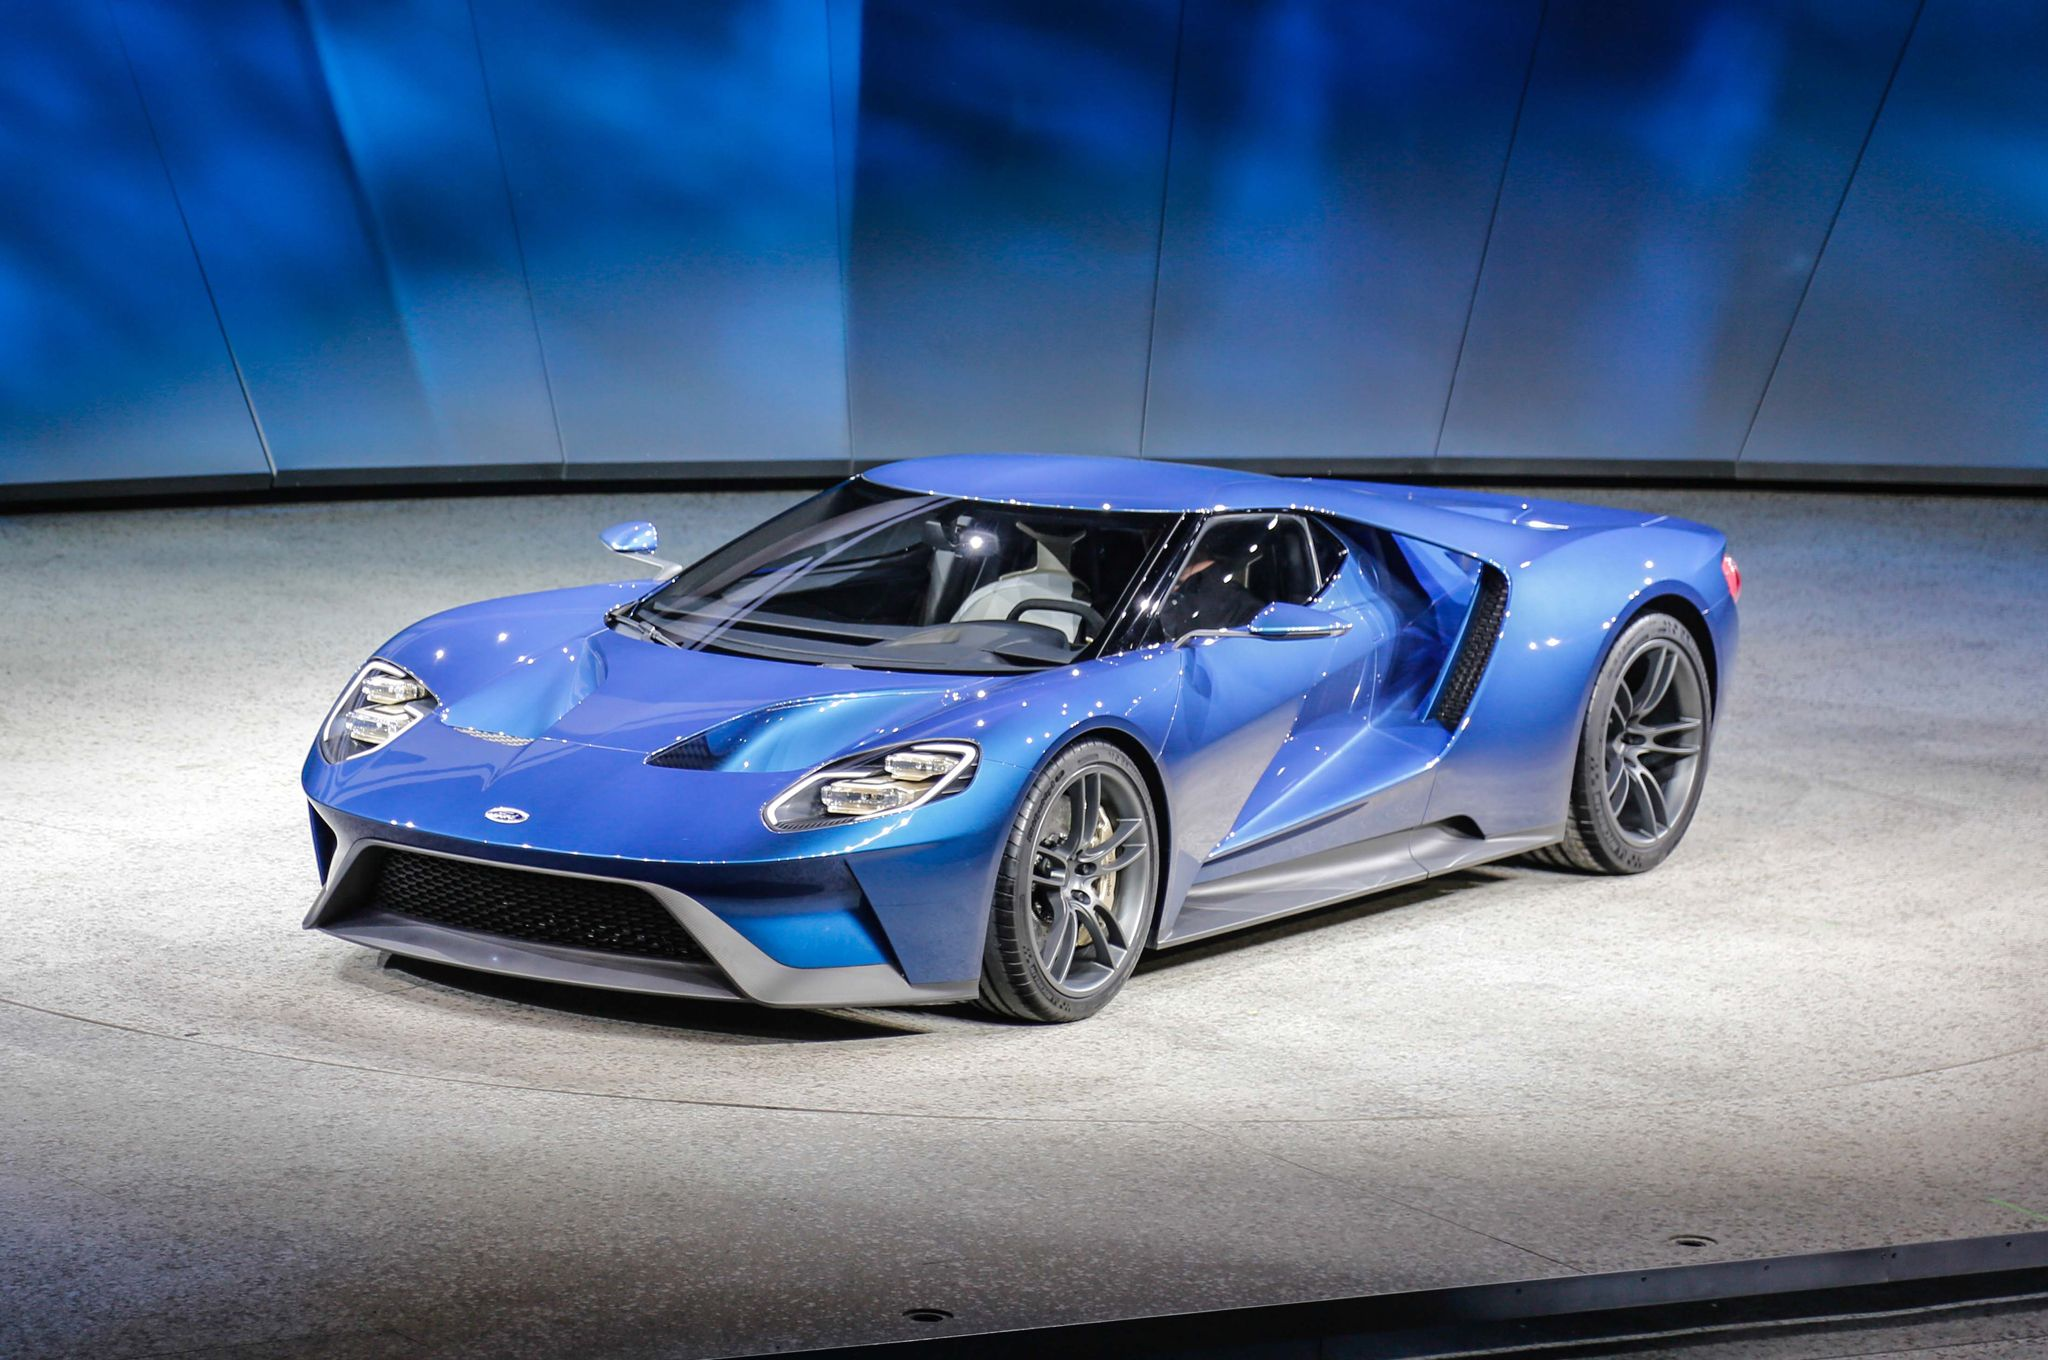 Looking Inside The Previously Hidden Studio Where Designers And Engineers Worked On The Ford Gt Concept Before Its Debut At Januarys Detroit Auto Show